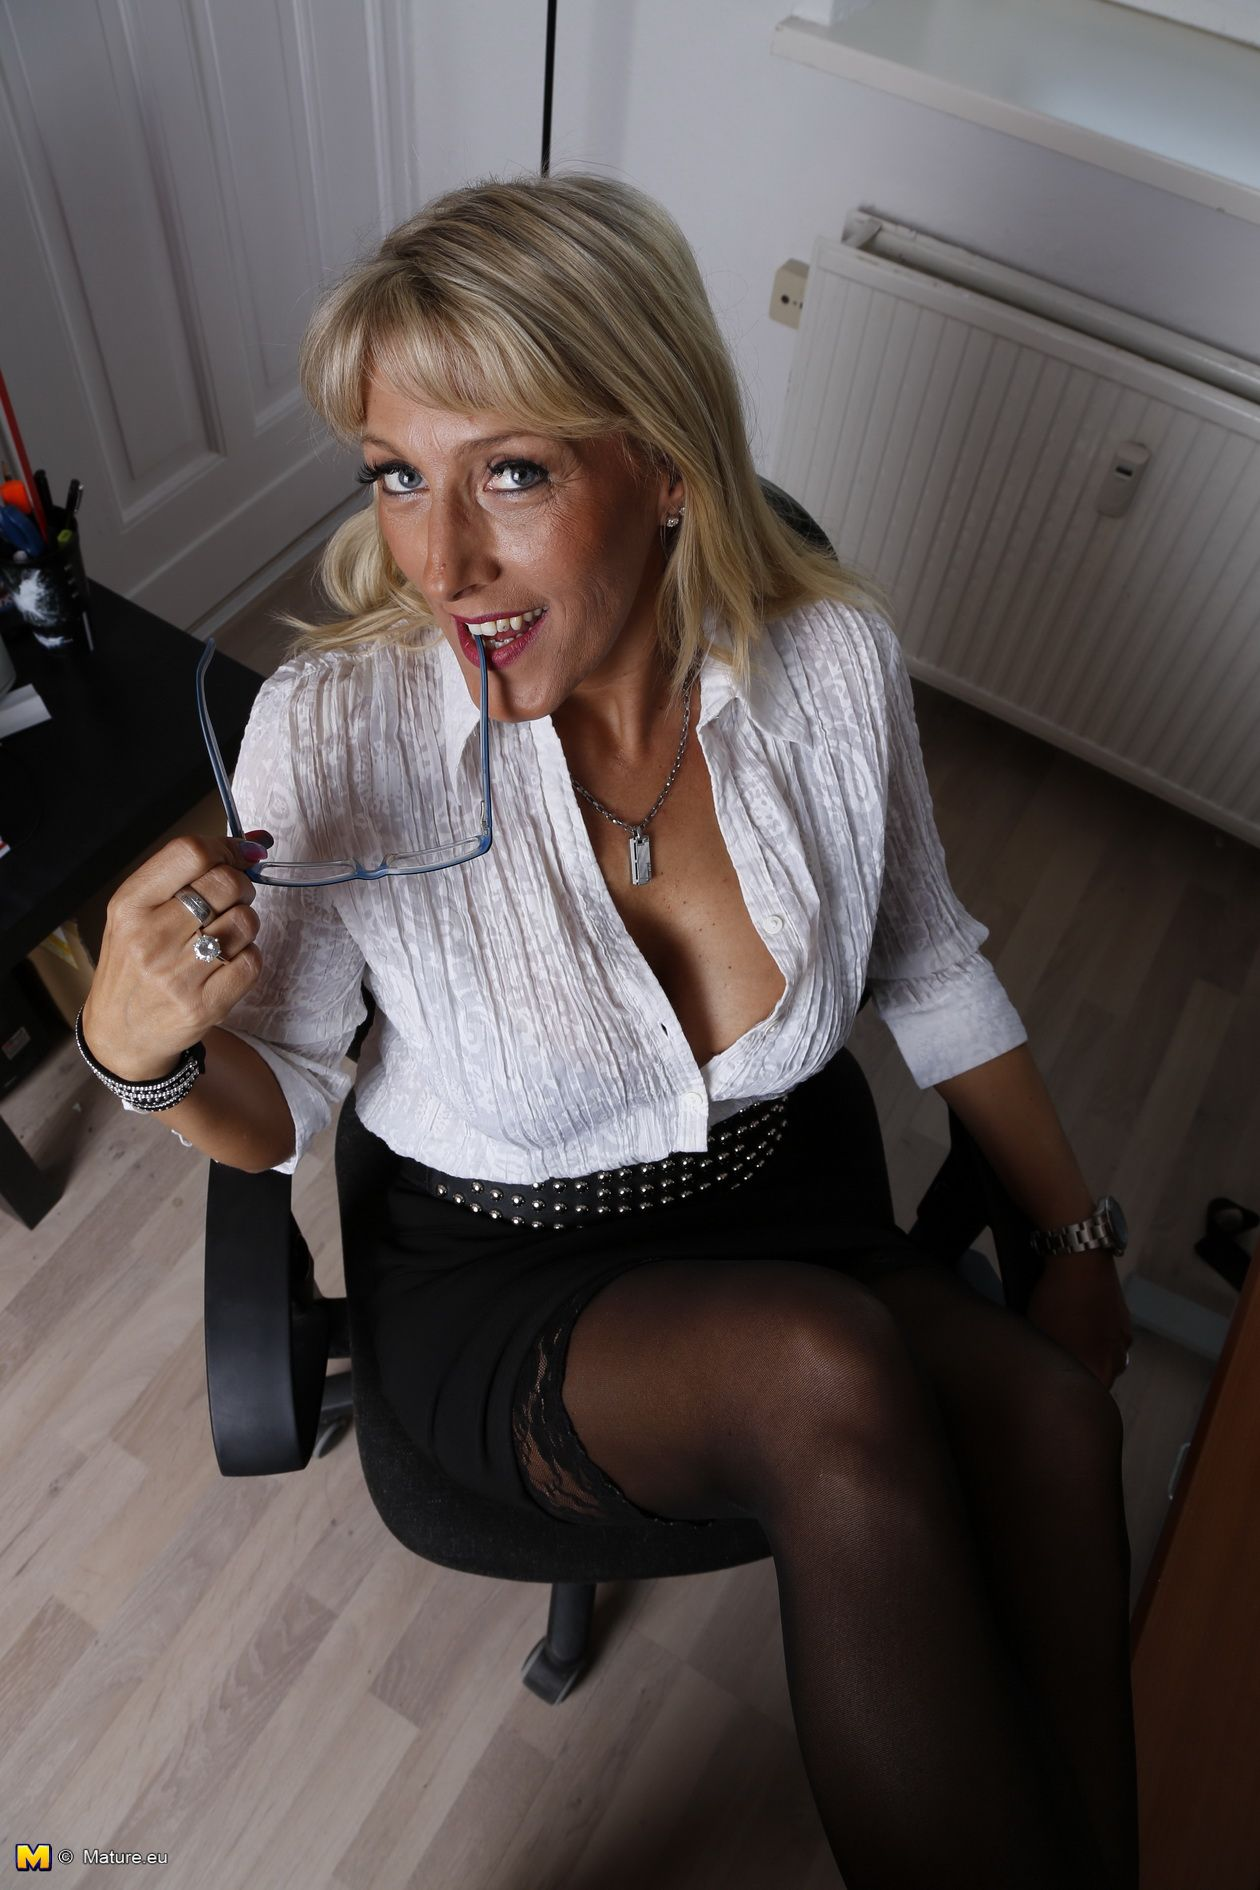 blonde mature in stockings | sexy mature women i would love to fuck